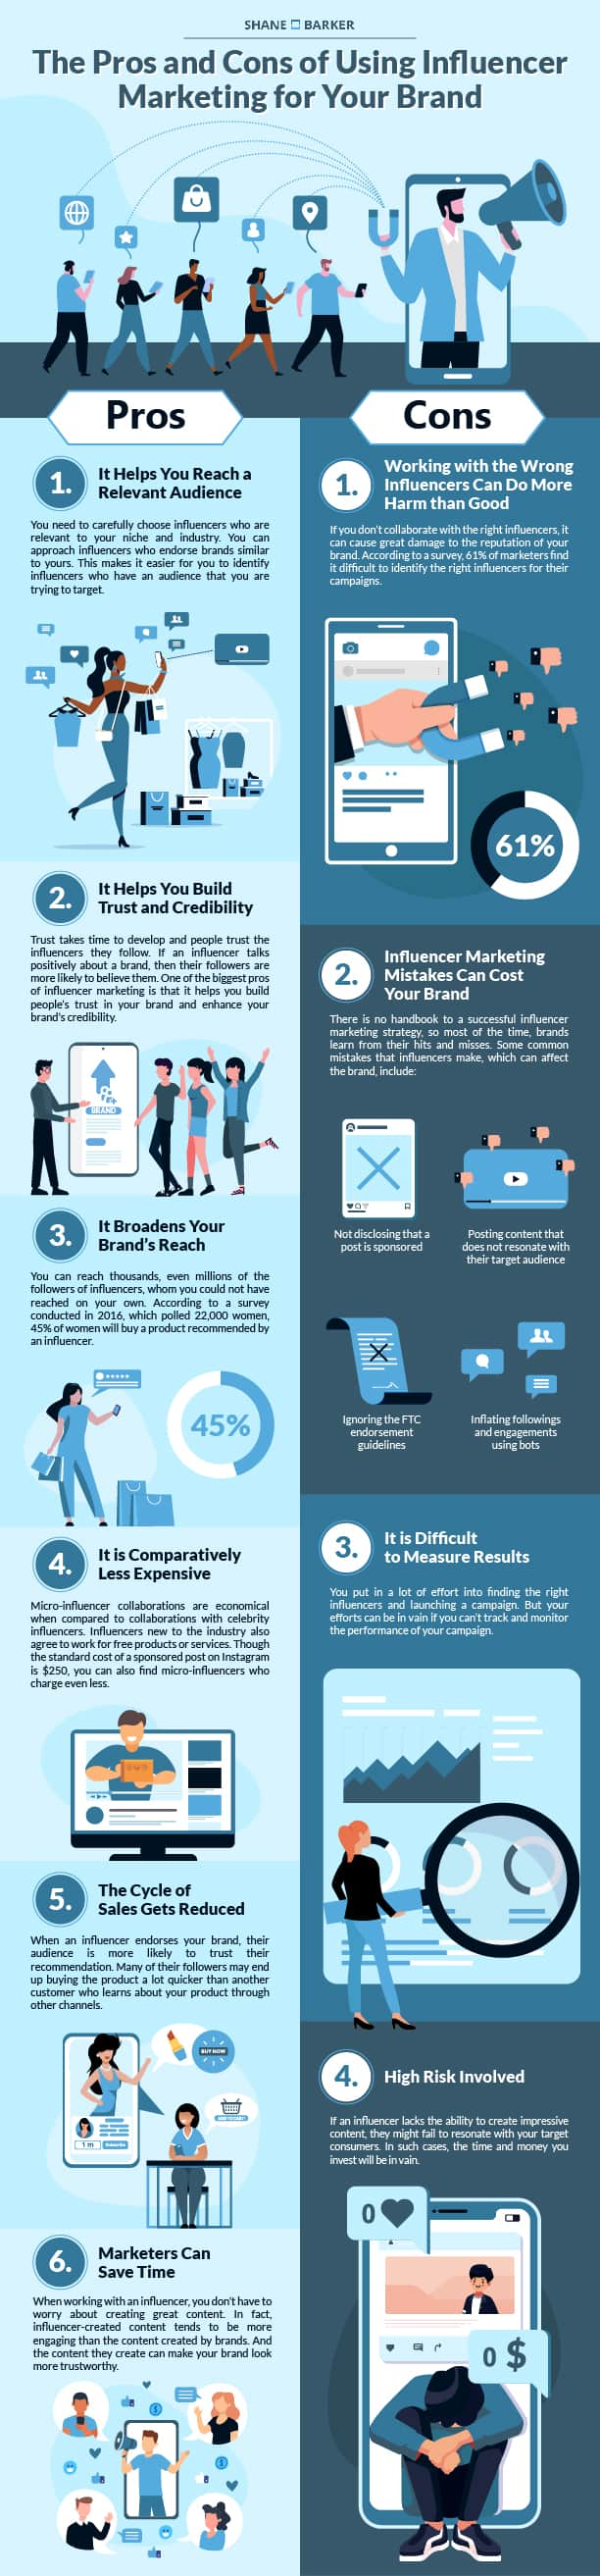 The Pros and Cons of Using Influencer Marketing for Your Brand (Infographic)